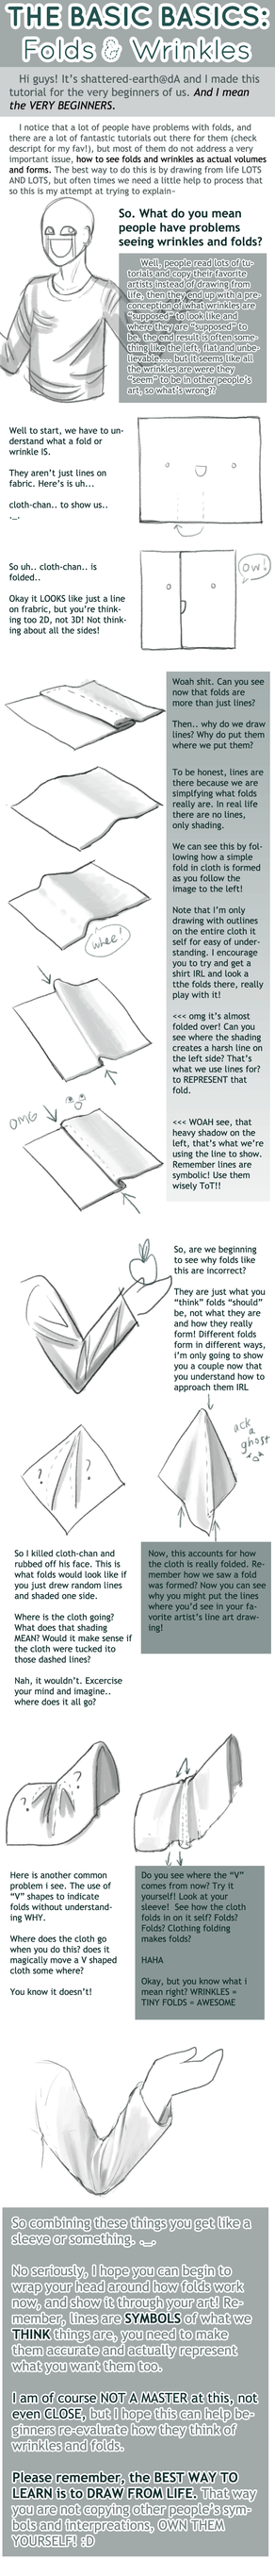 The BASICS : Folds + Wrinkles by Shattered-Earth